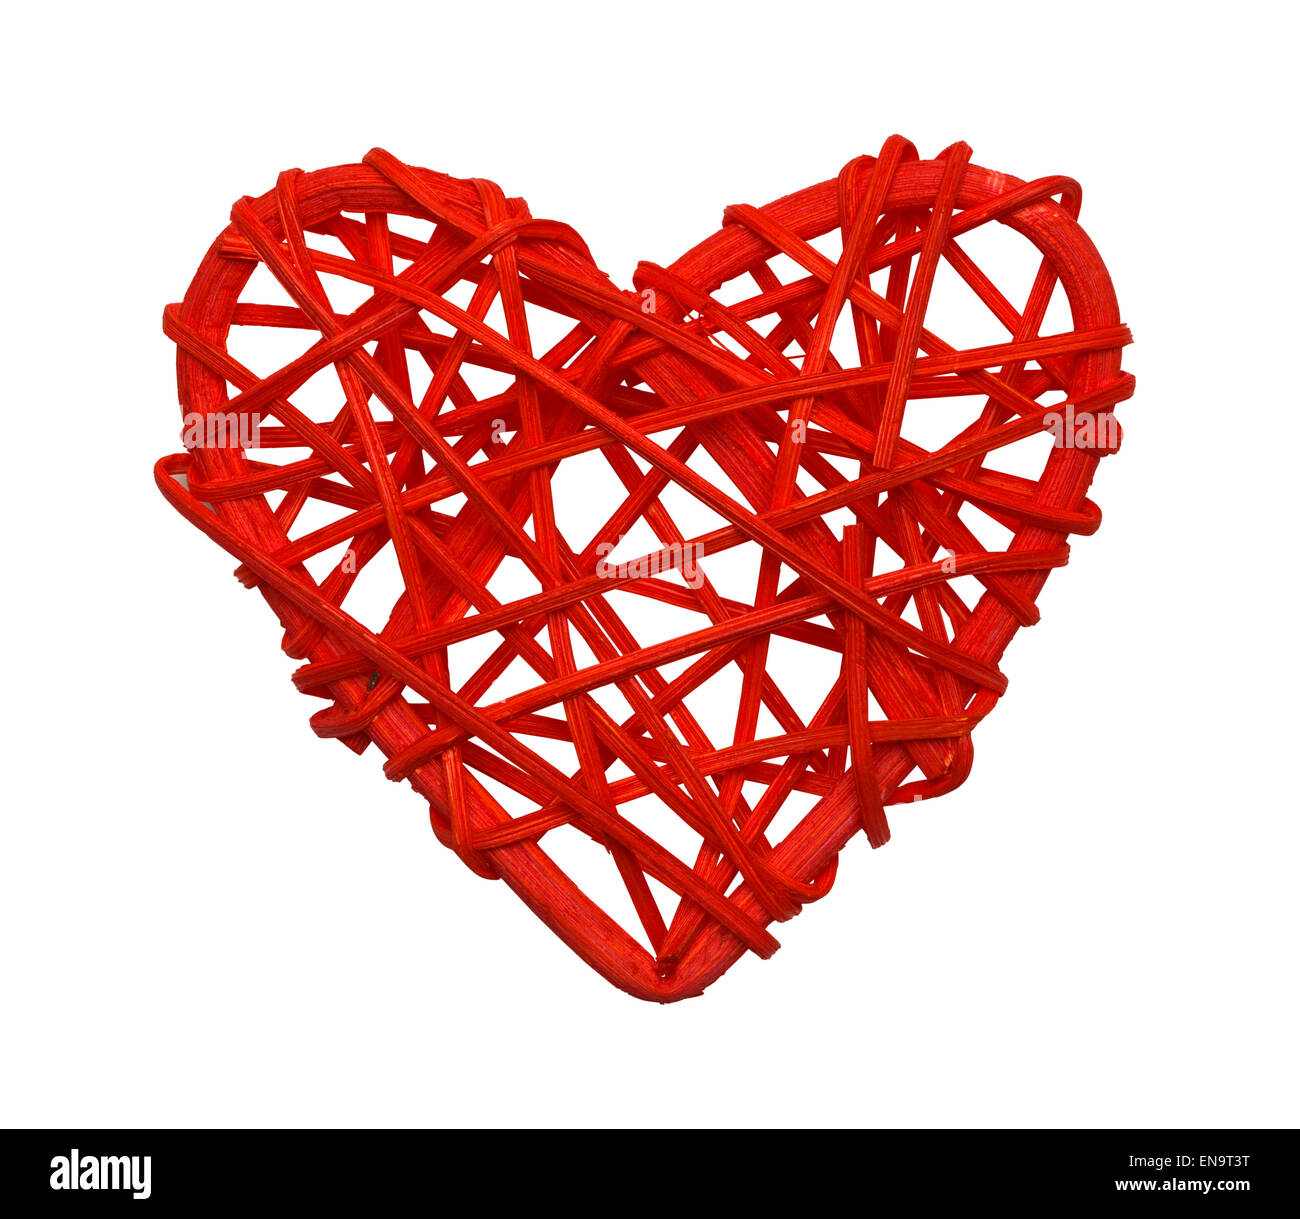 Red Wood Vine Heart Isolated on White Background. - Stock Image